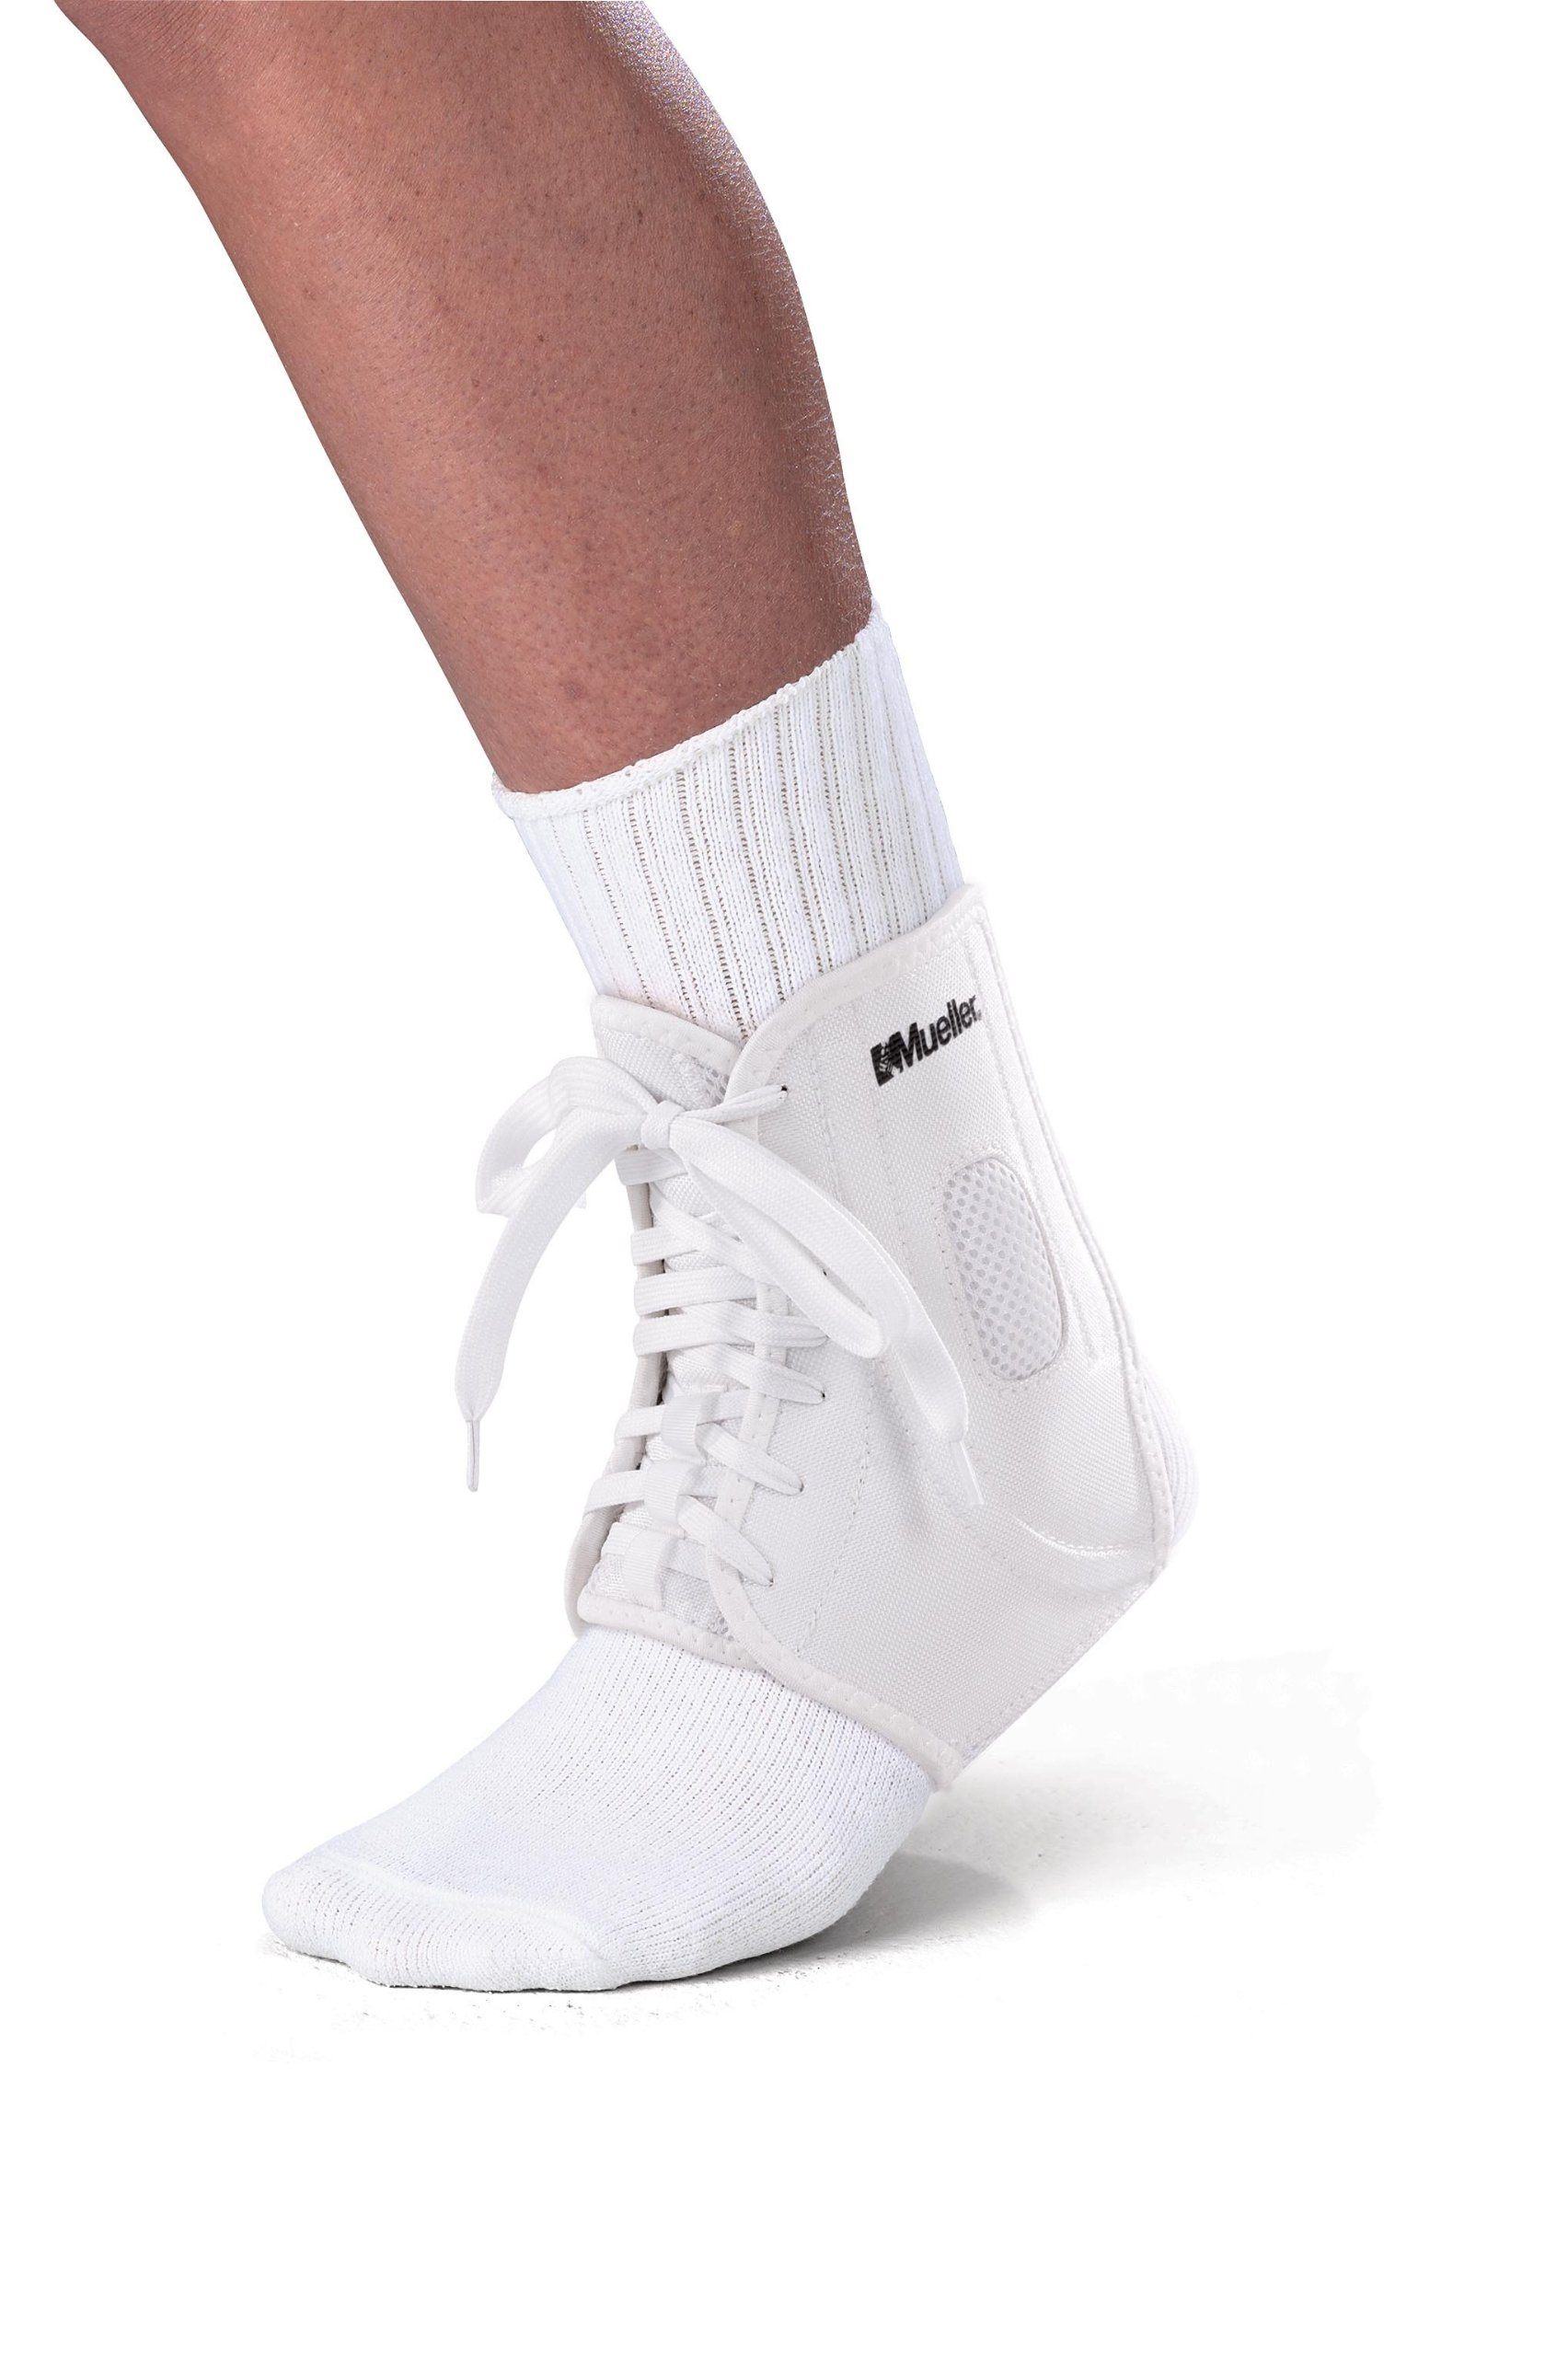 Mueller Atf 2 Ankle Brace, White, Xtra Large